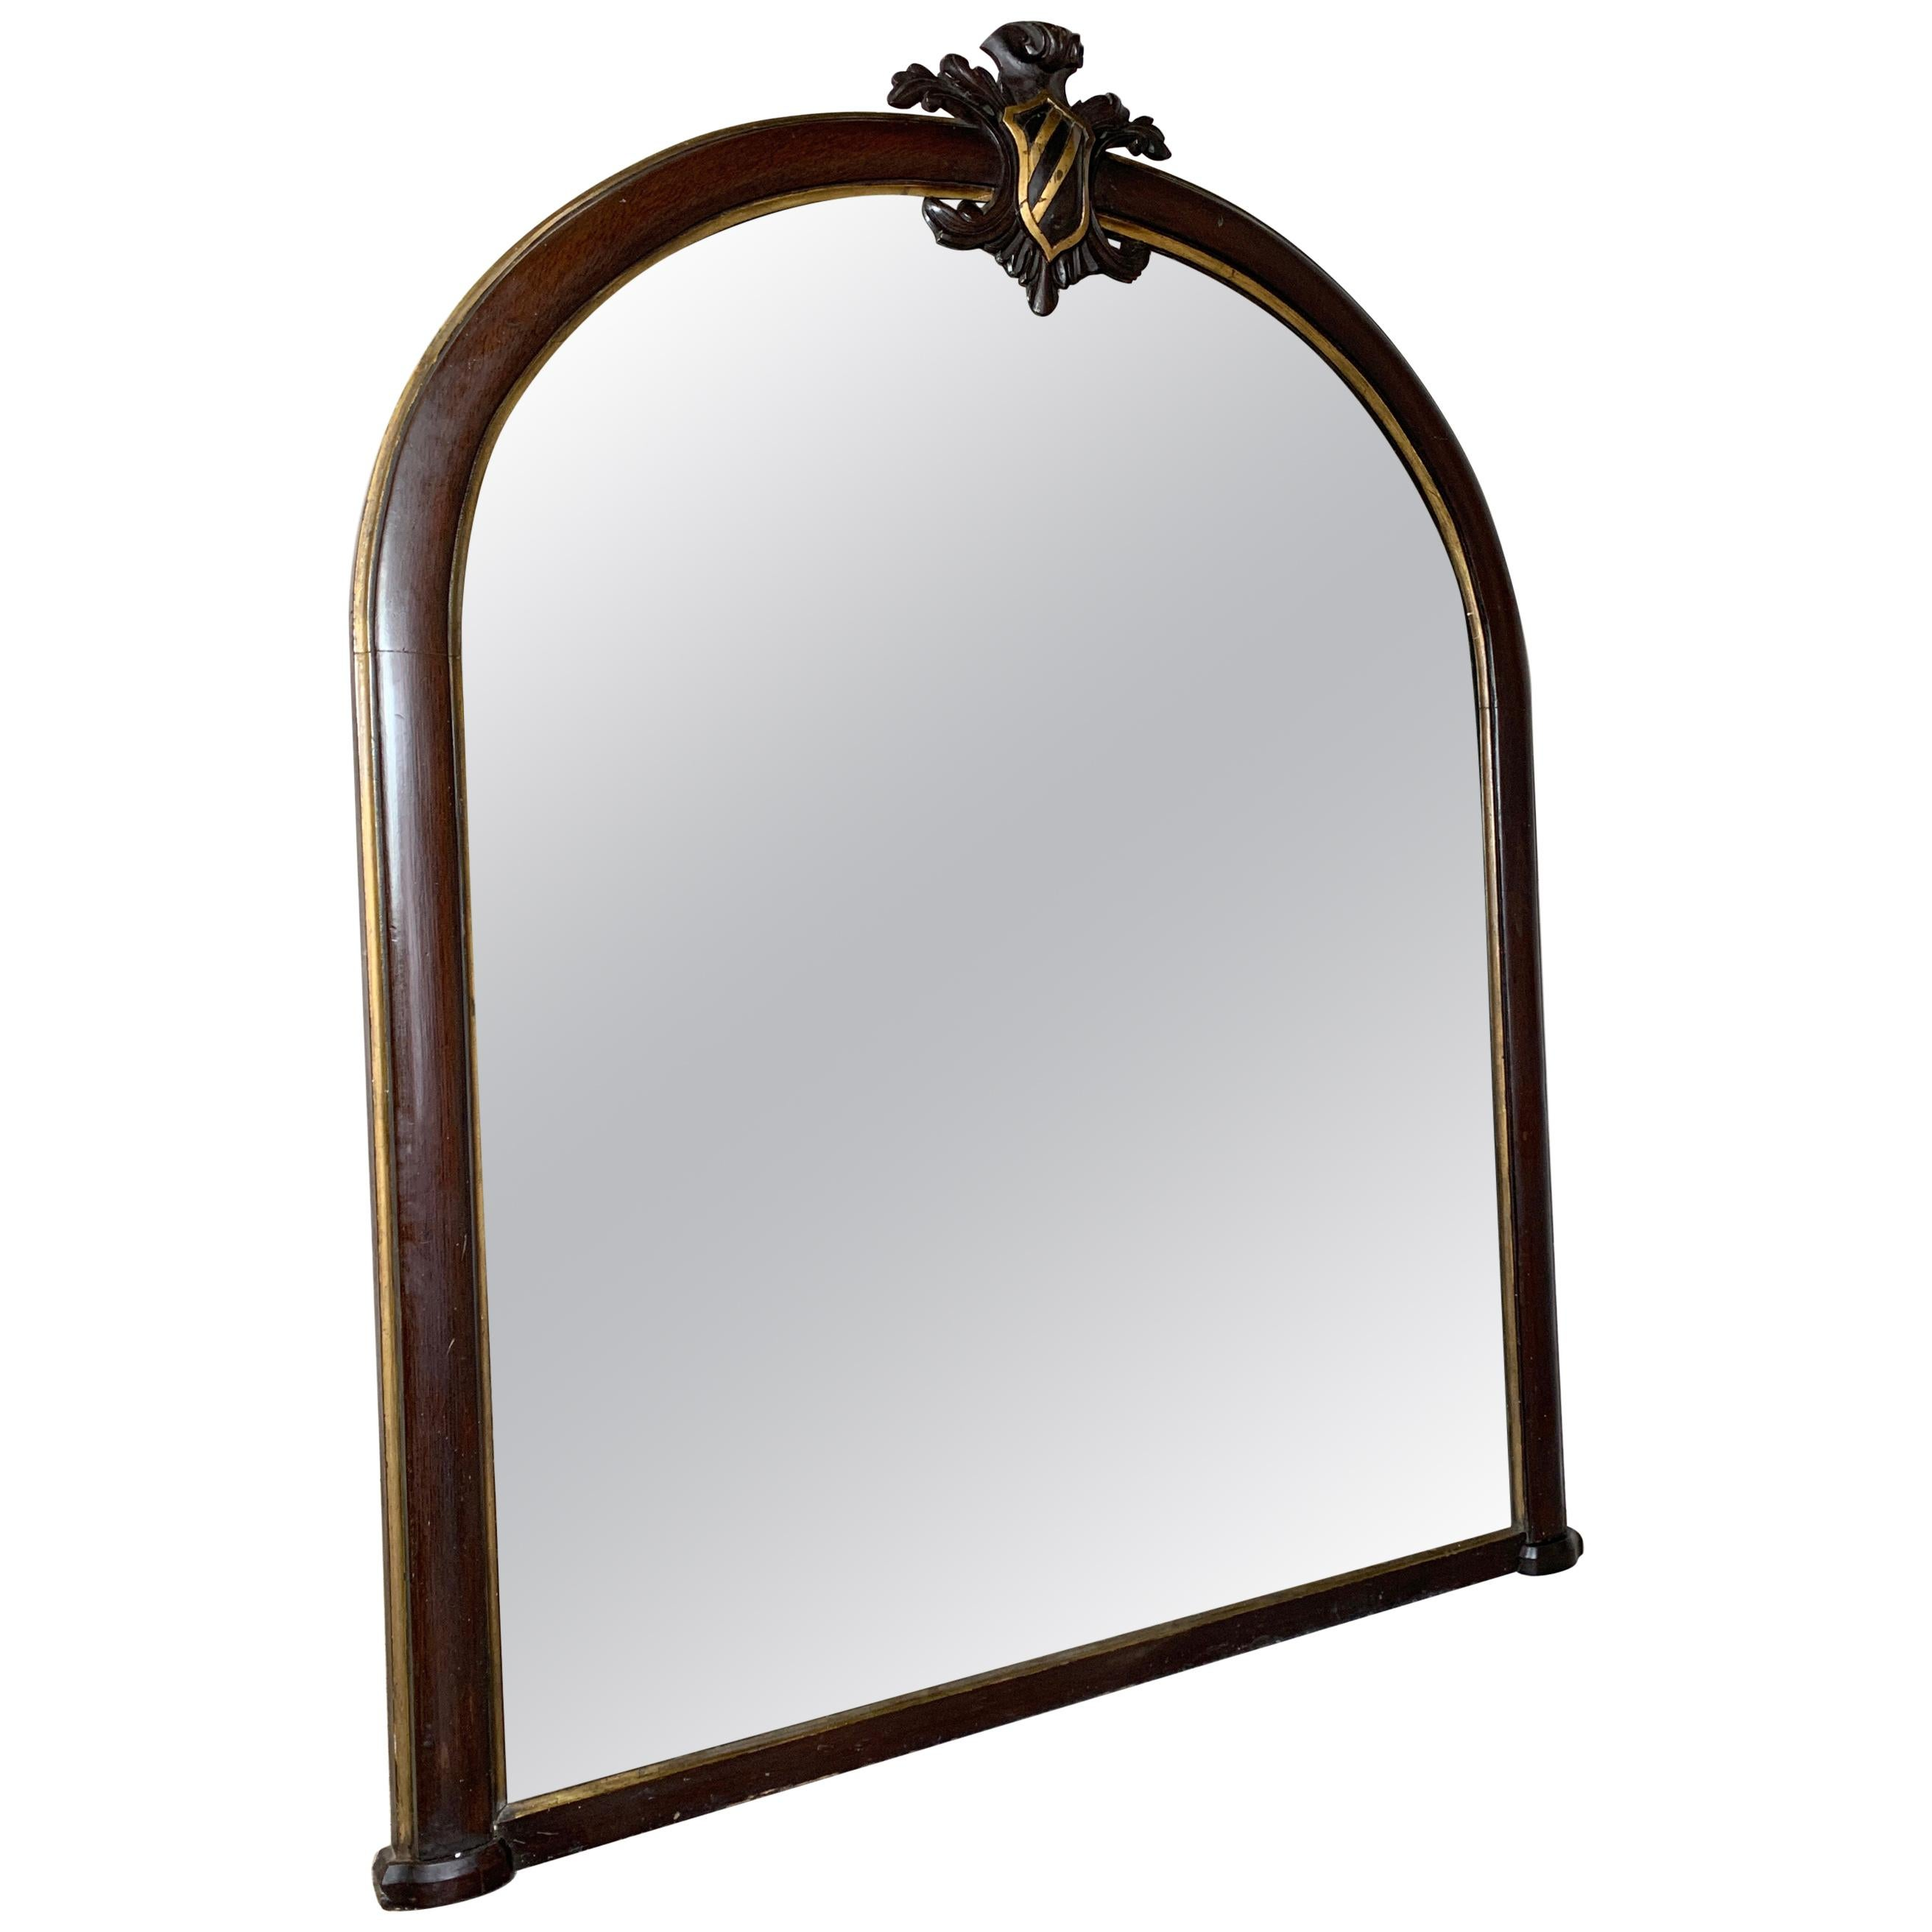 Large Mahogany, Crested Overmantle Mirror